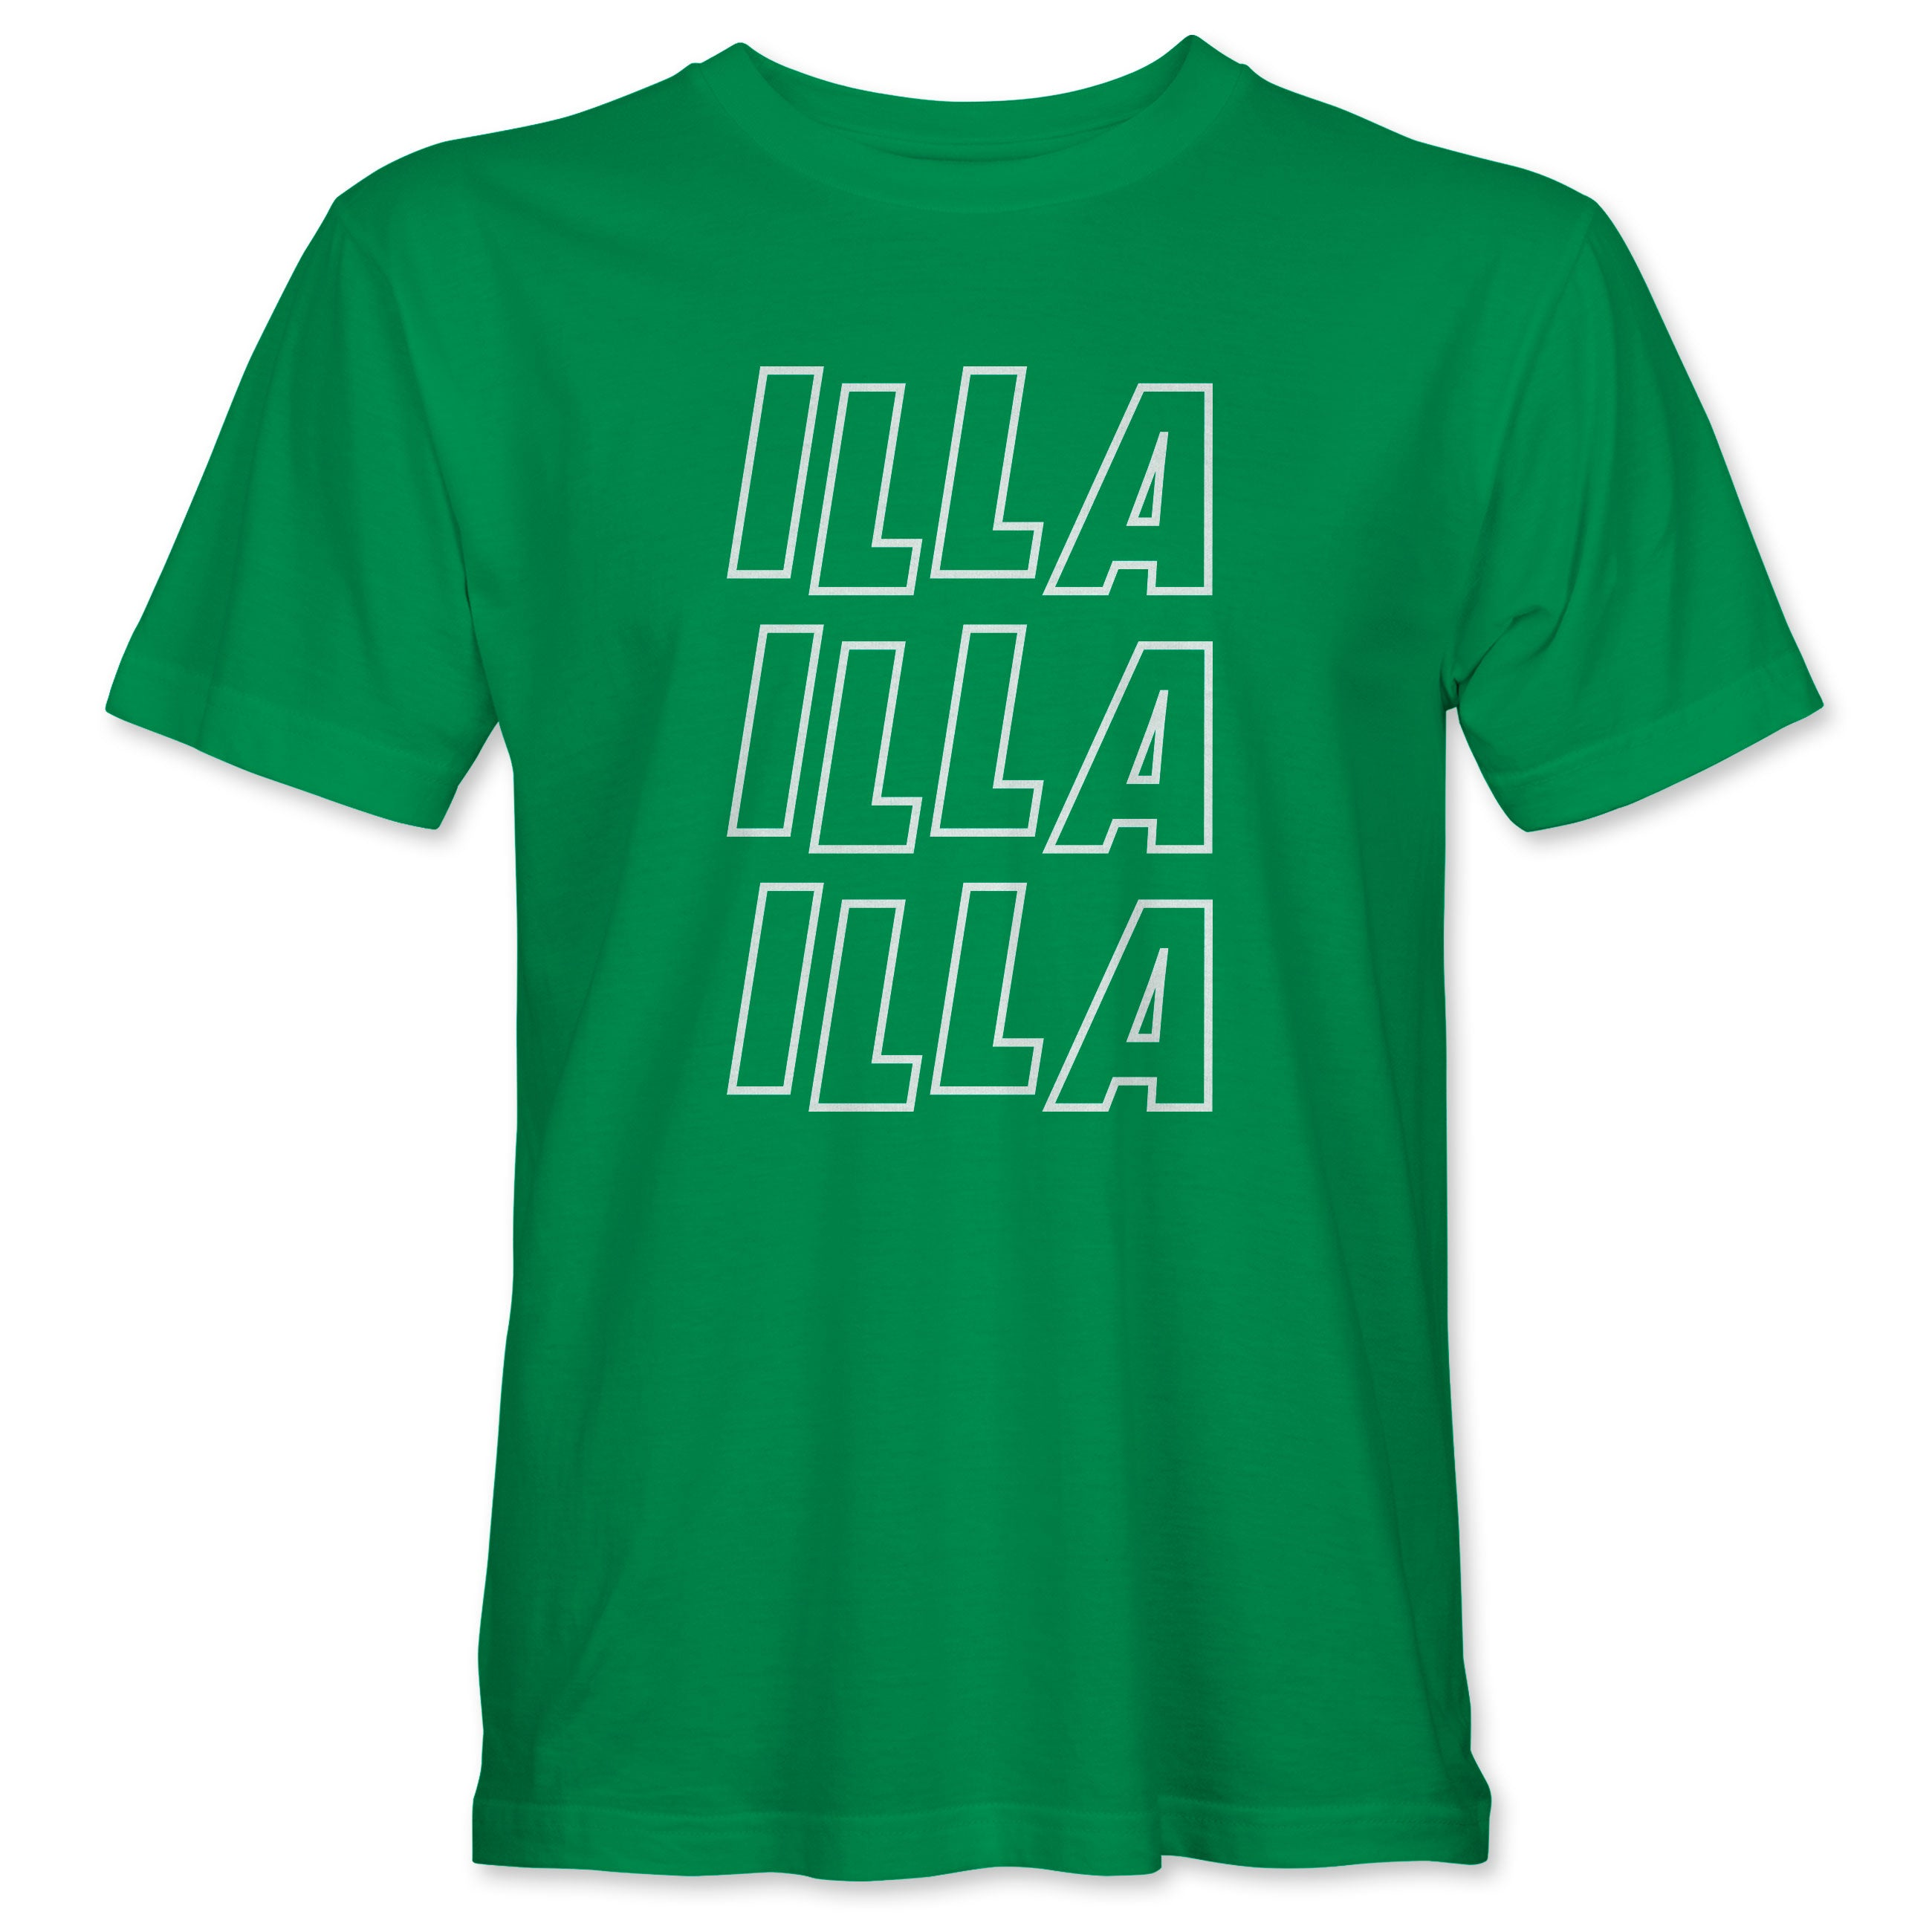 ILLA ILLA ILLA T-shirt - Kelly Green